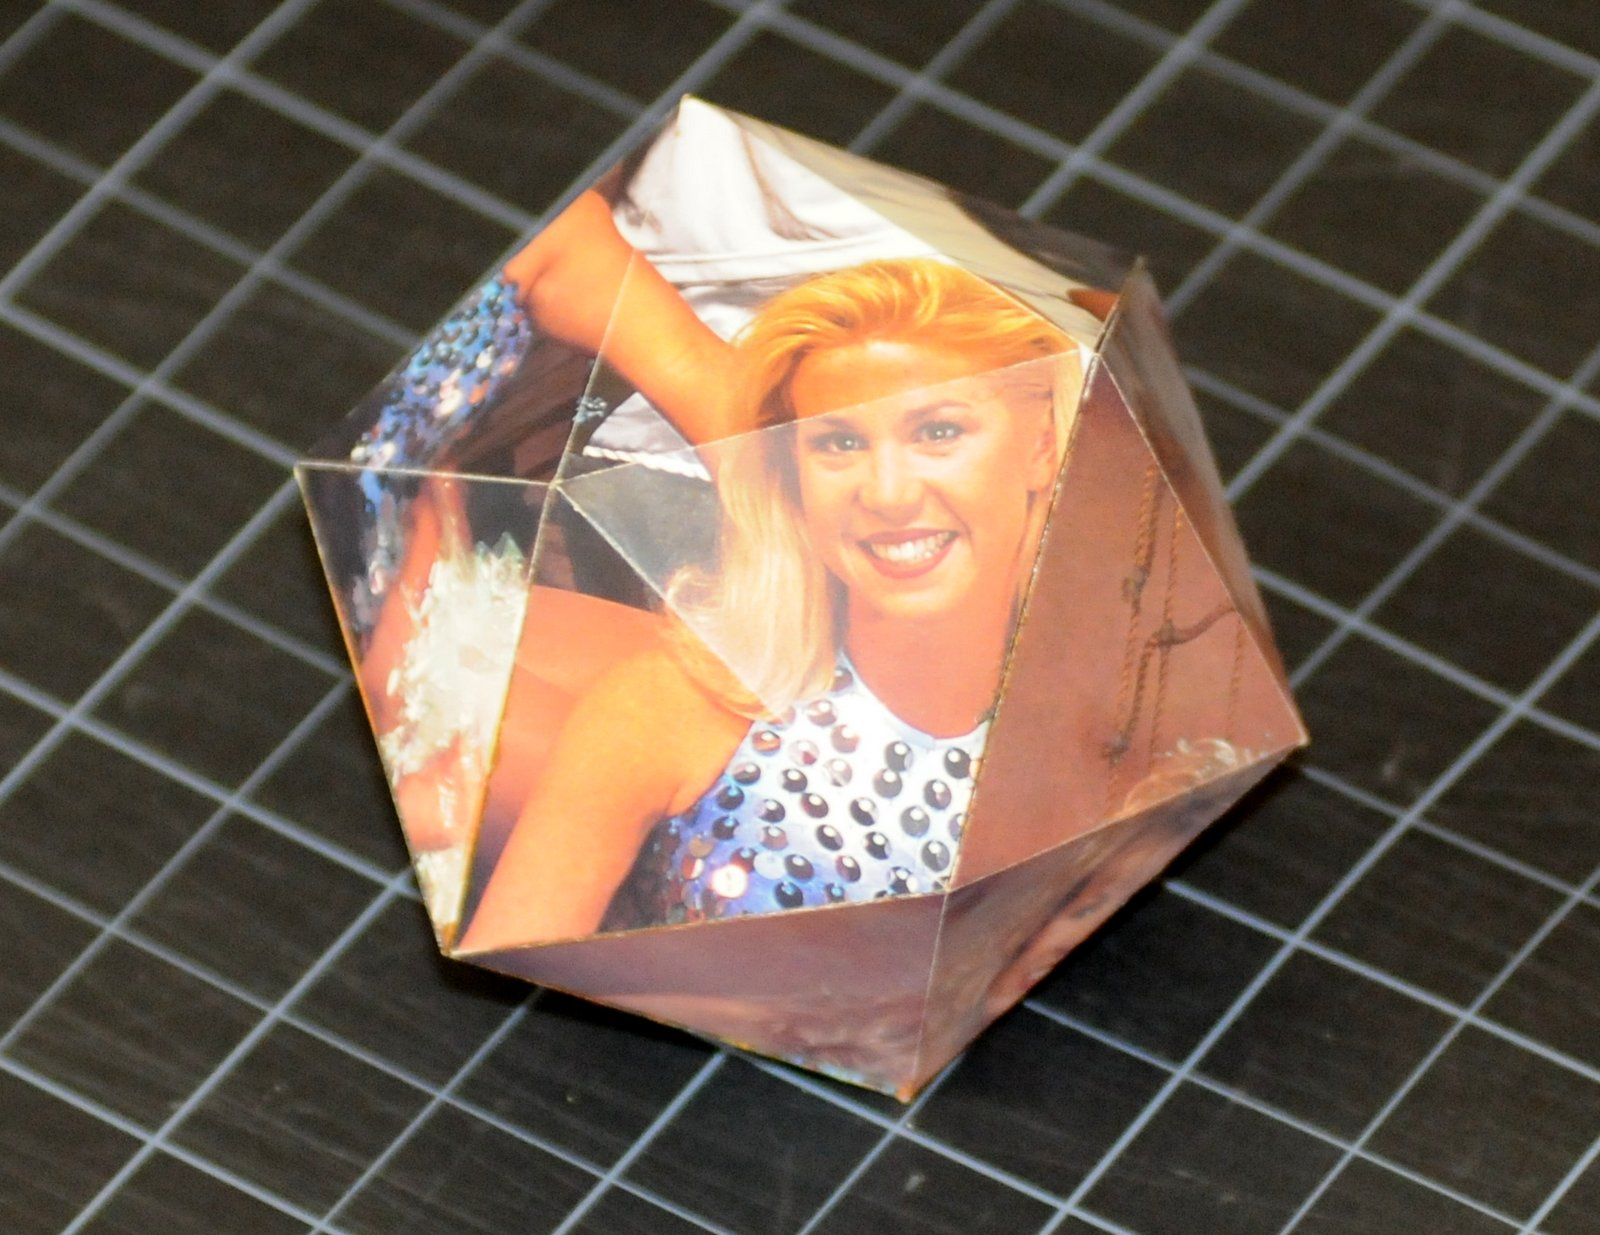 a paper model of an icosahedron